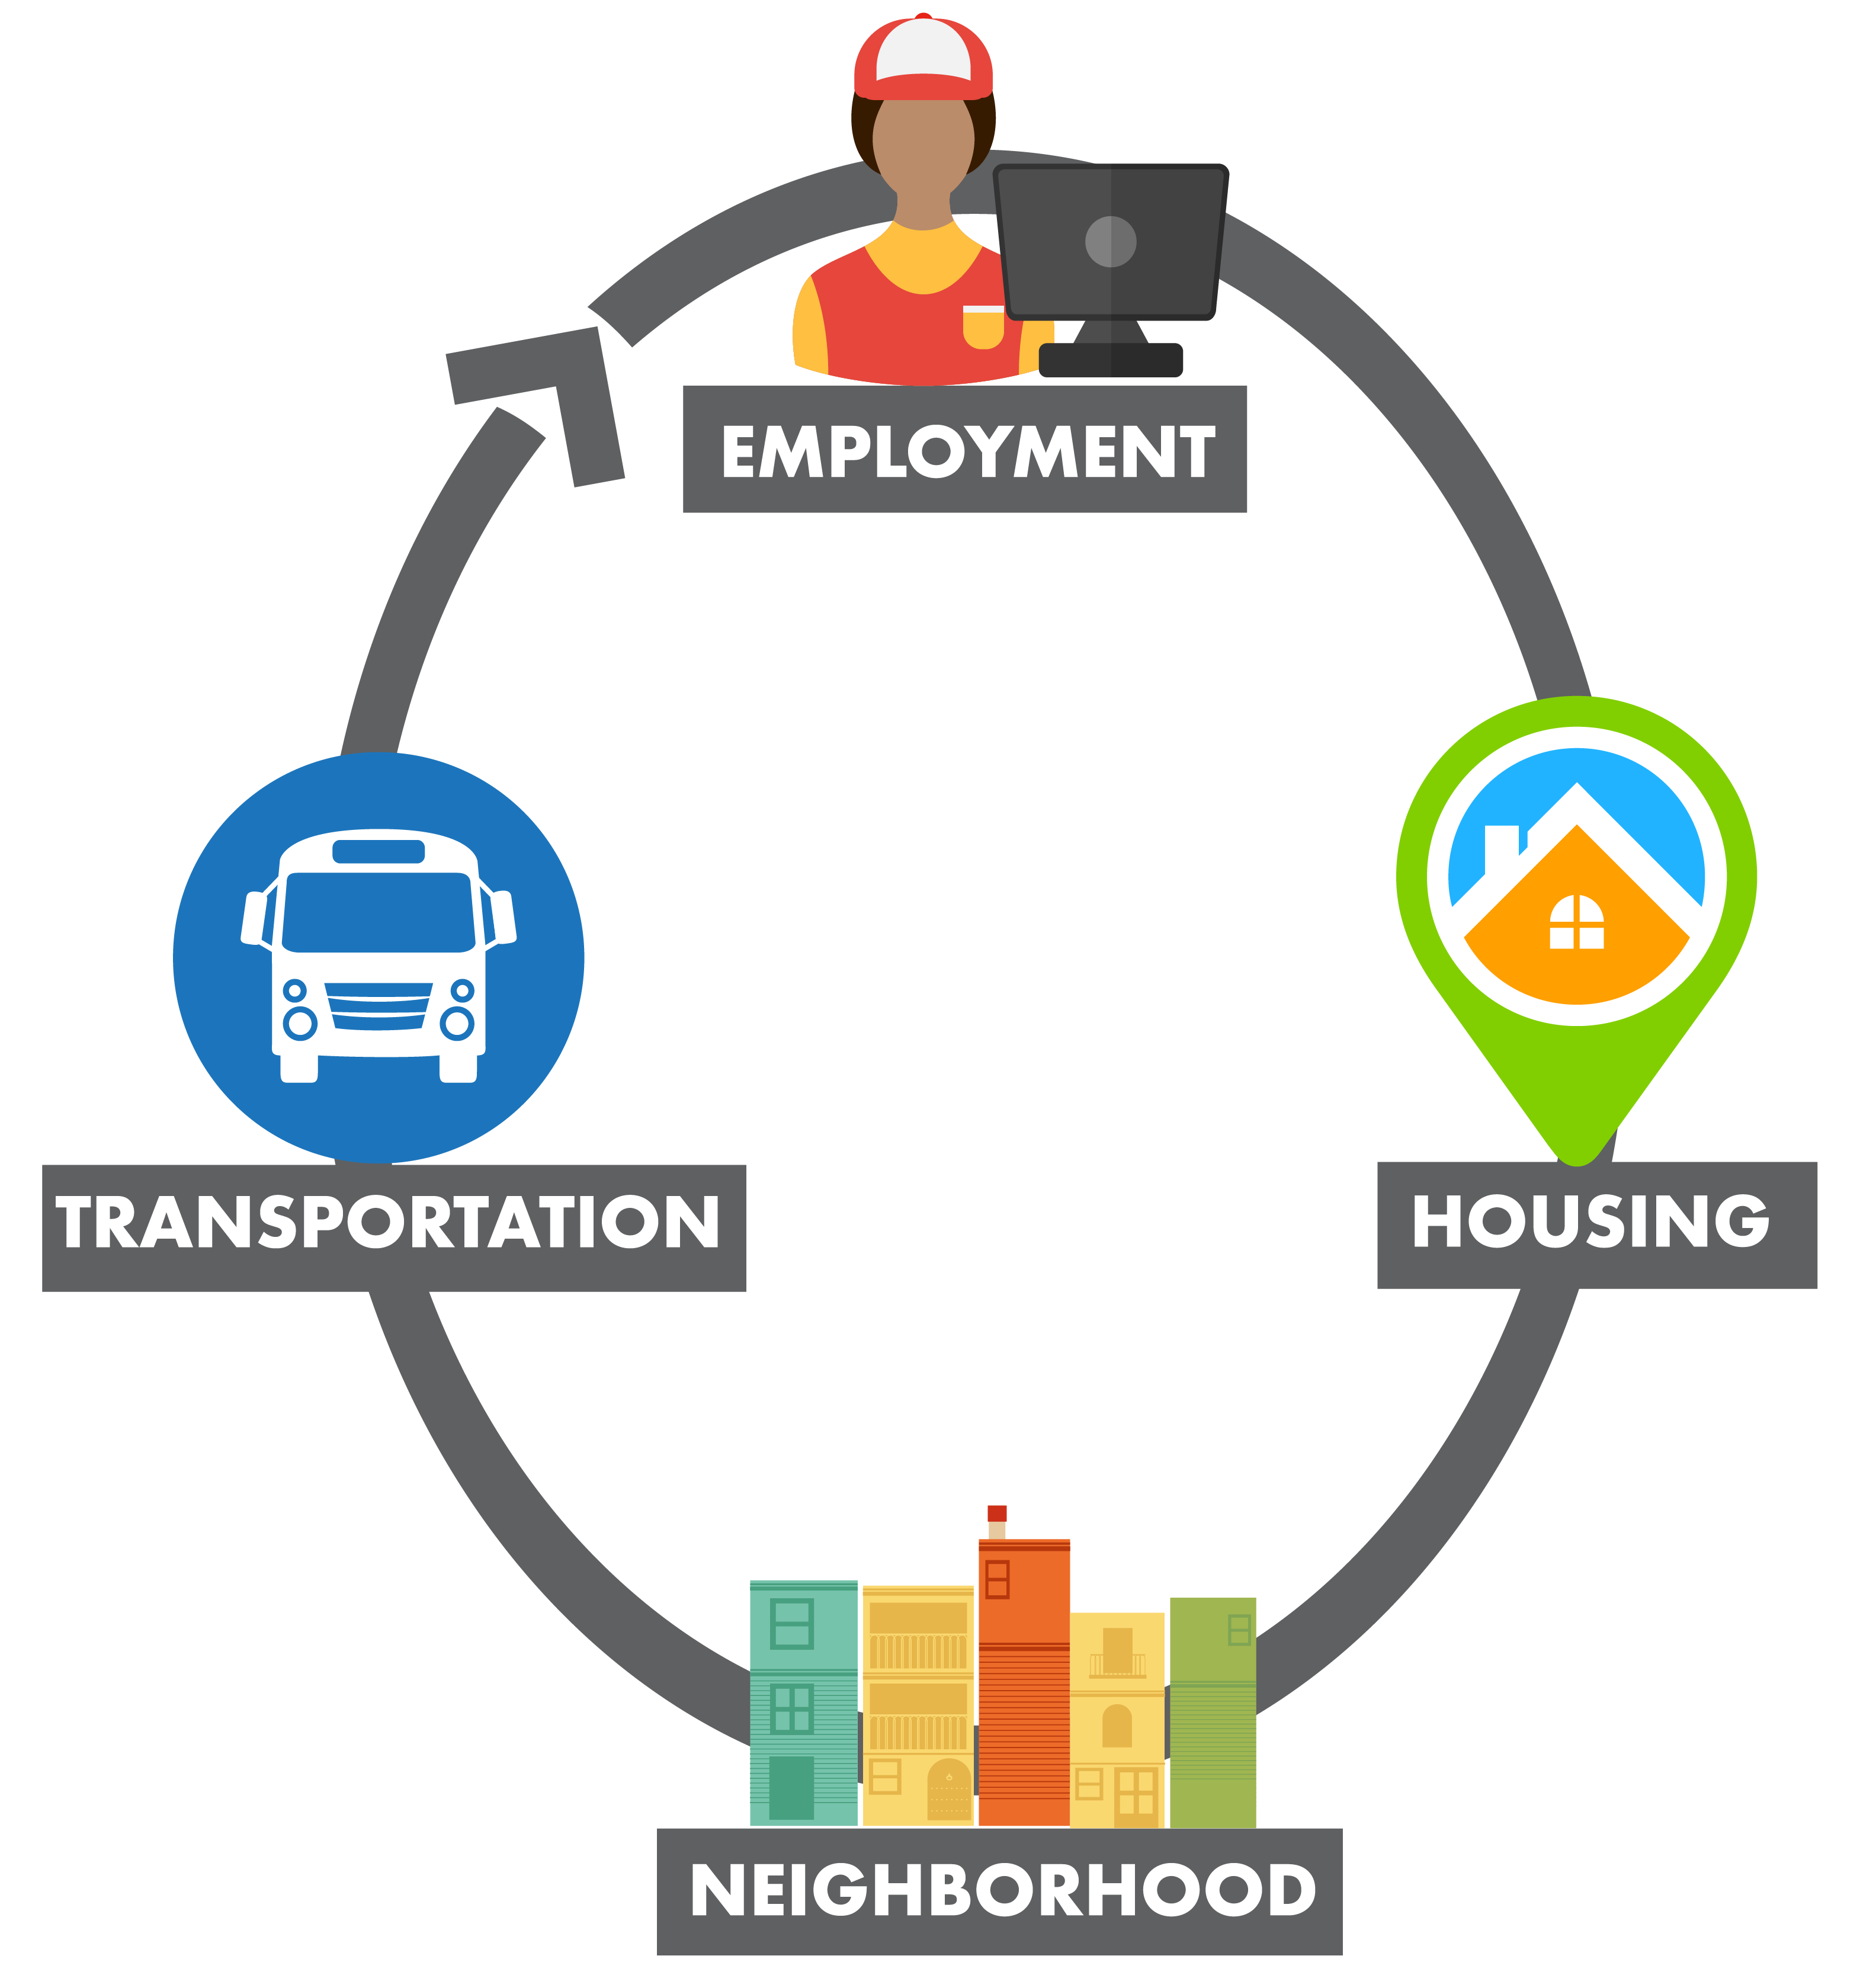 Employment, housing, neighborhood, and transportation are connected and intertwined